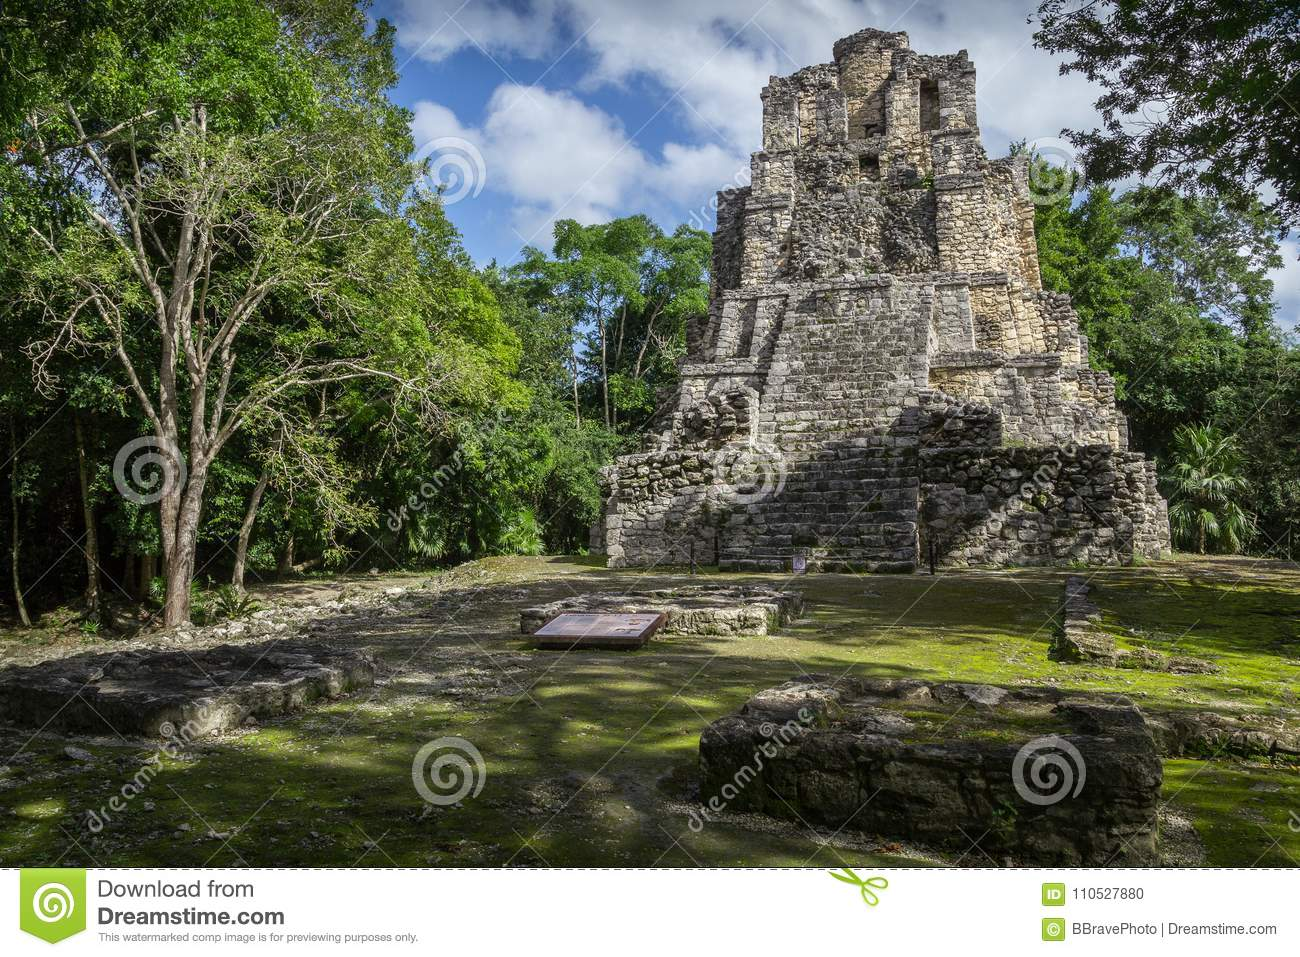 Landscape panorama of Ancient Maya temple complex in Muil & x28;Chuny